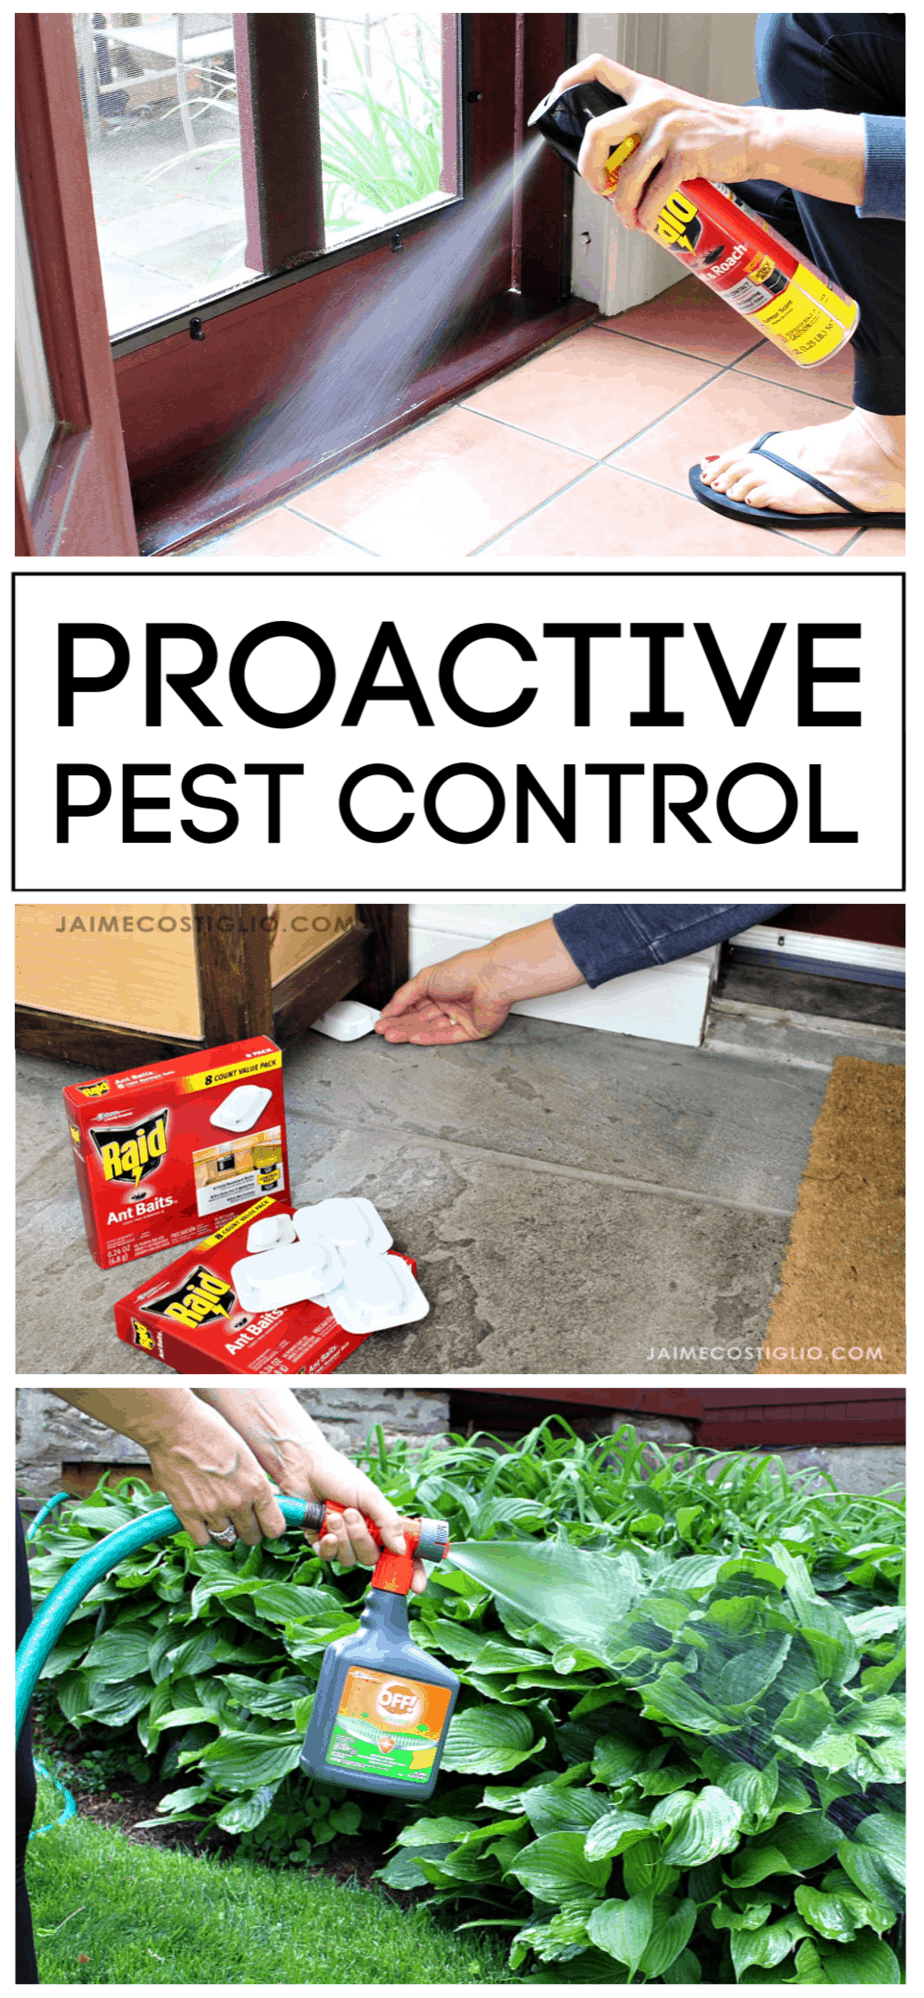 proactive pest control products